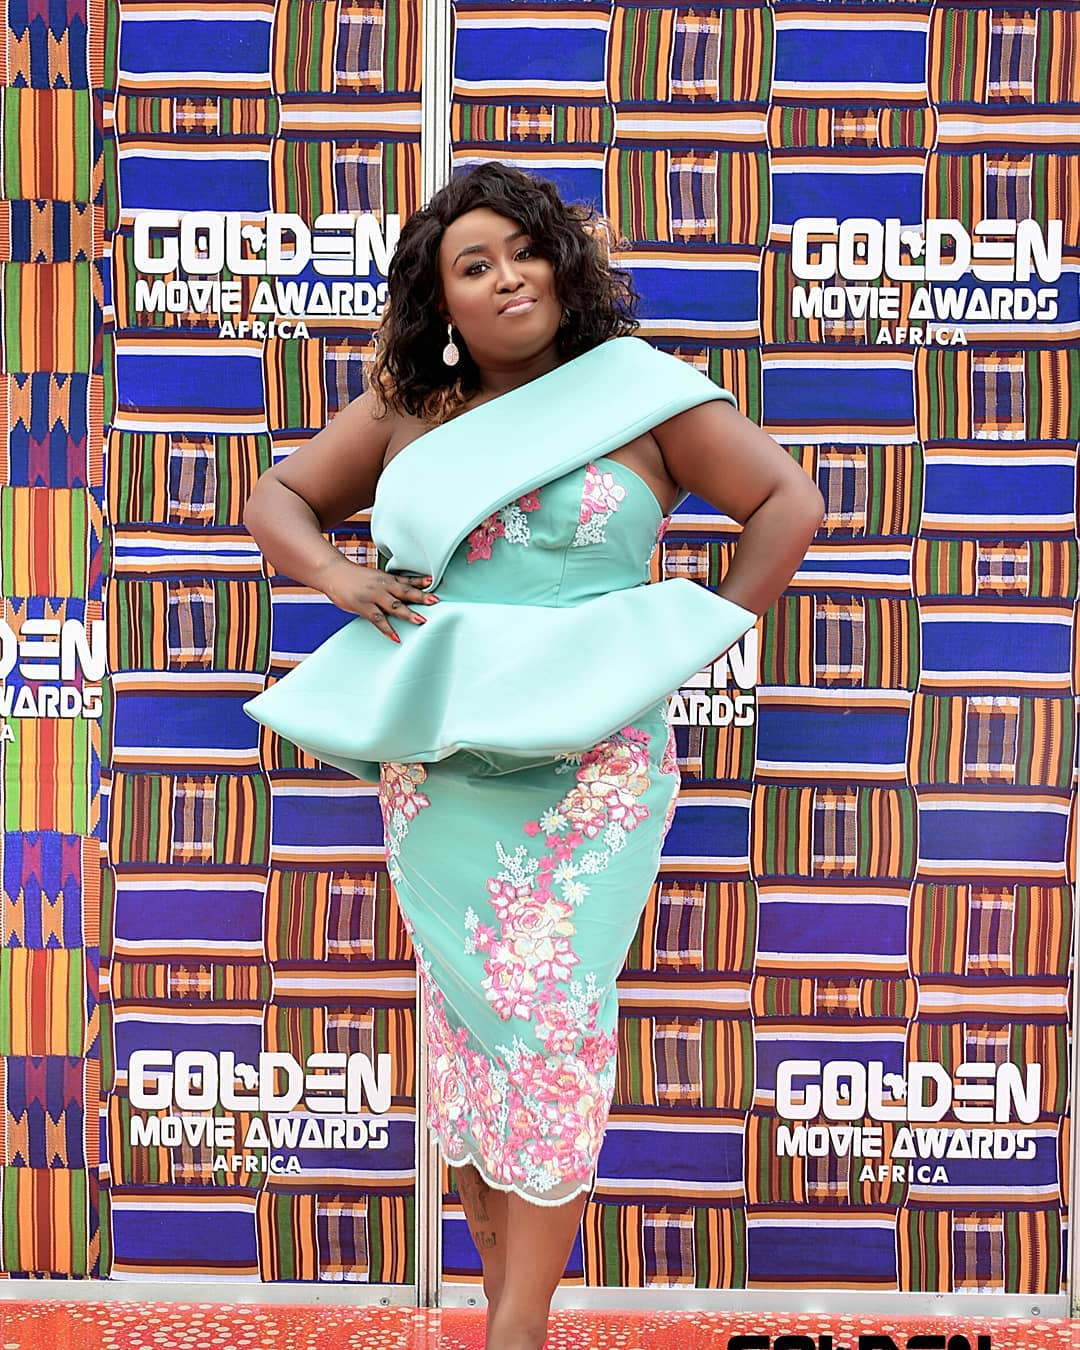 Director of the Golden Movie Awards Mimi Andani Michaels.